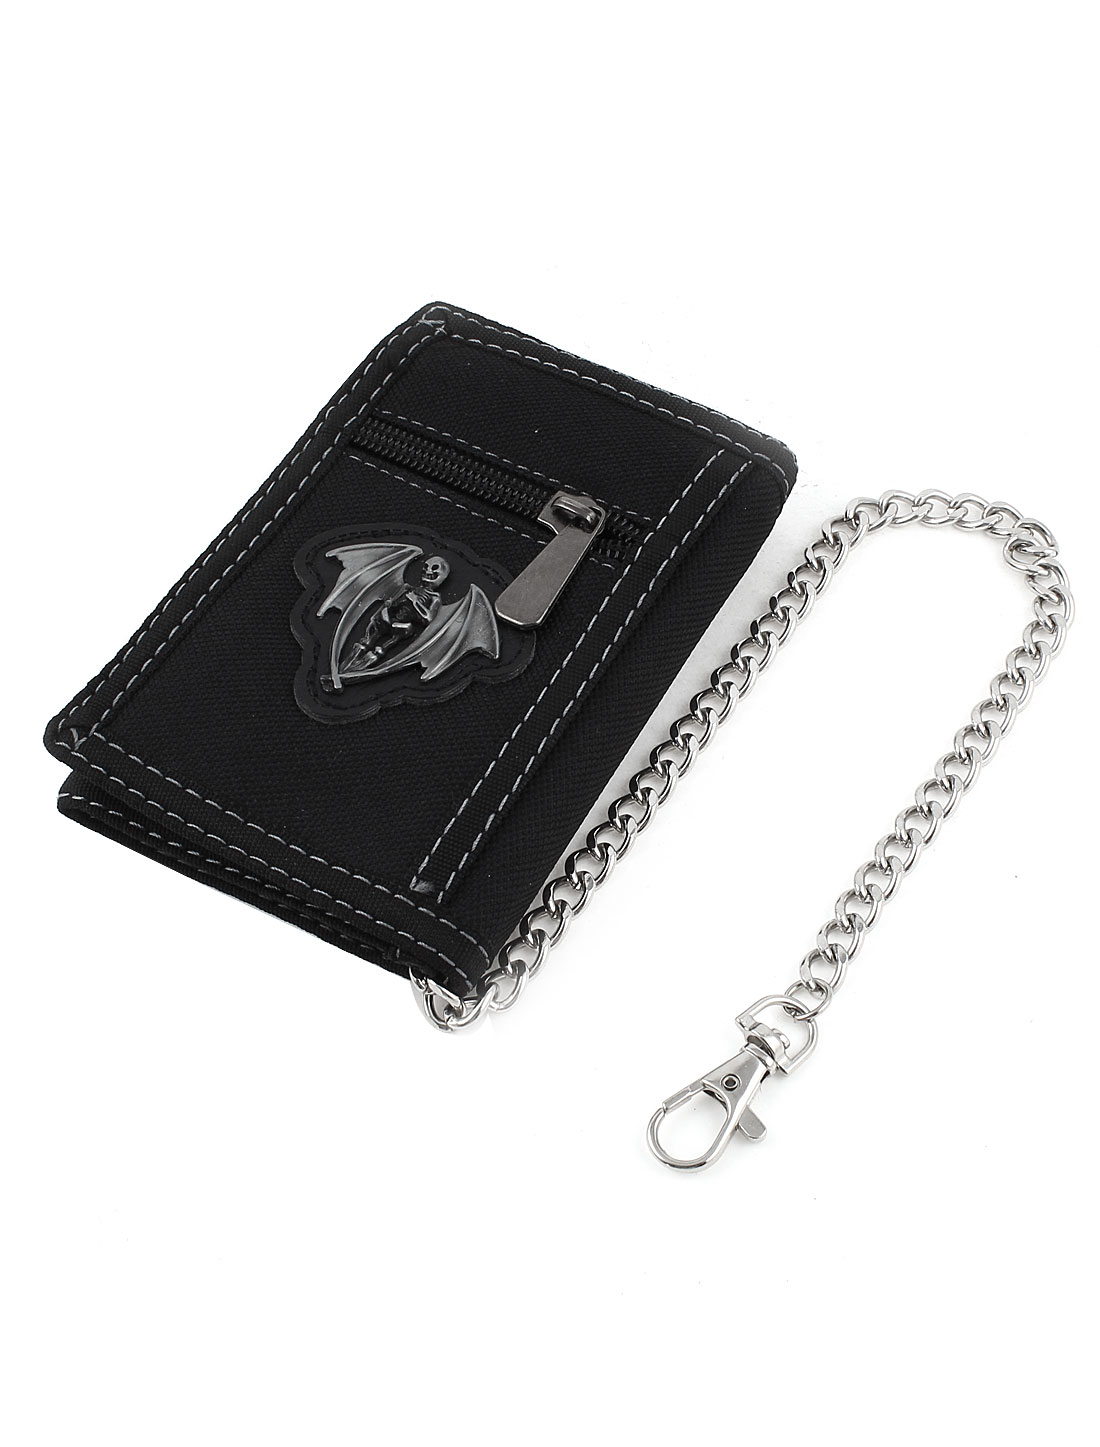 ID Pockets Silver Tone Chain Flip Open Trifold Style Wallet Purse Black for Men